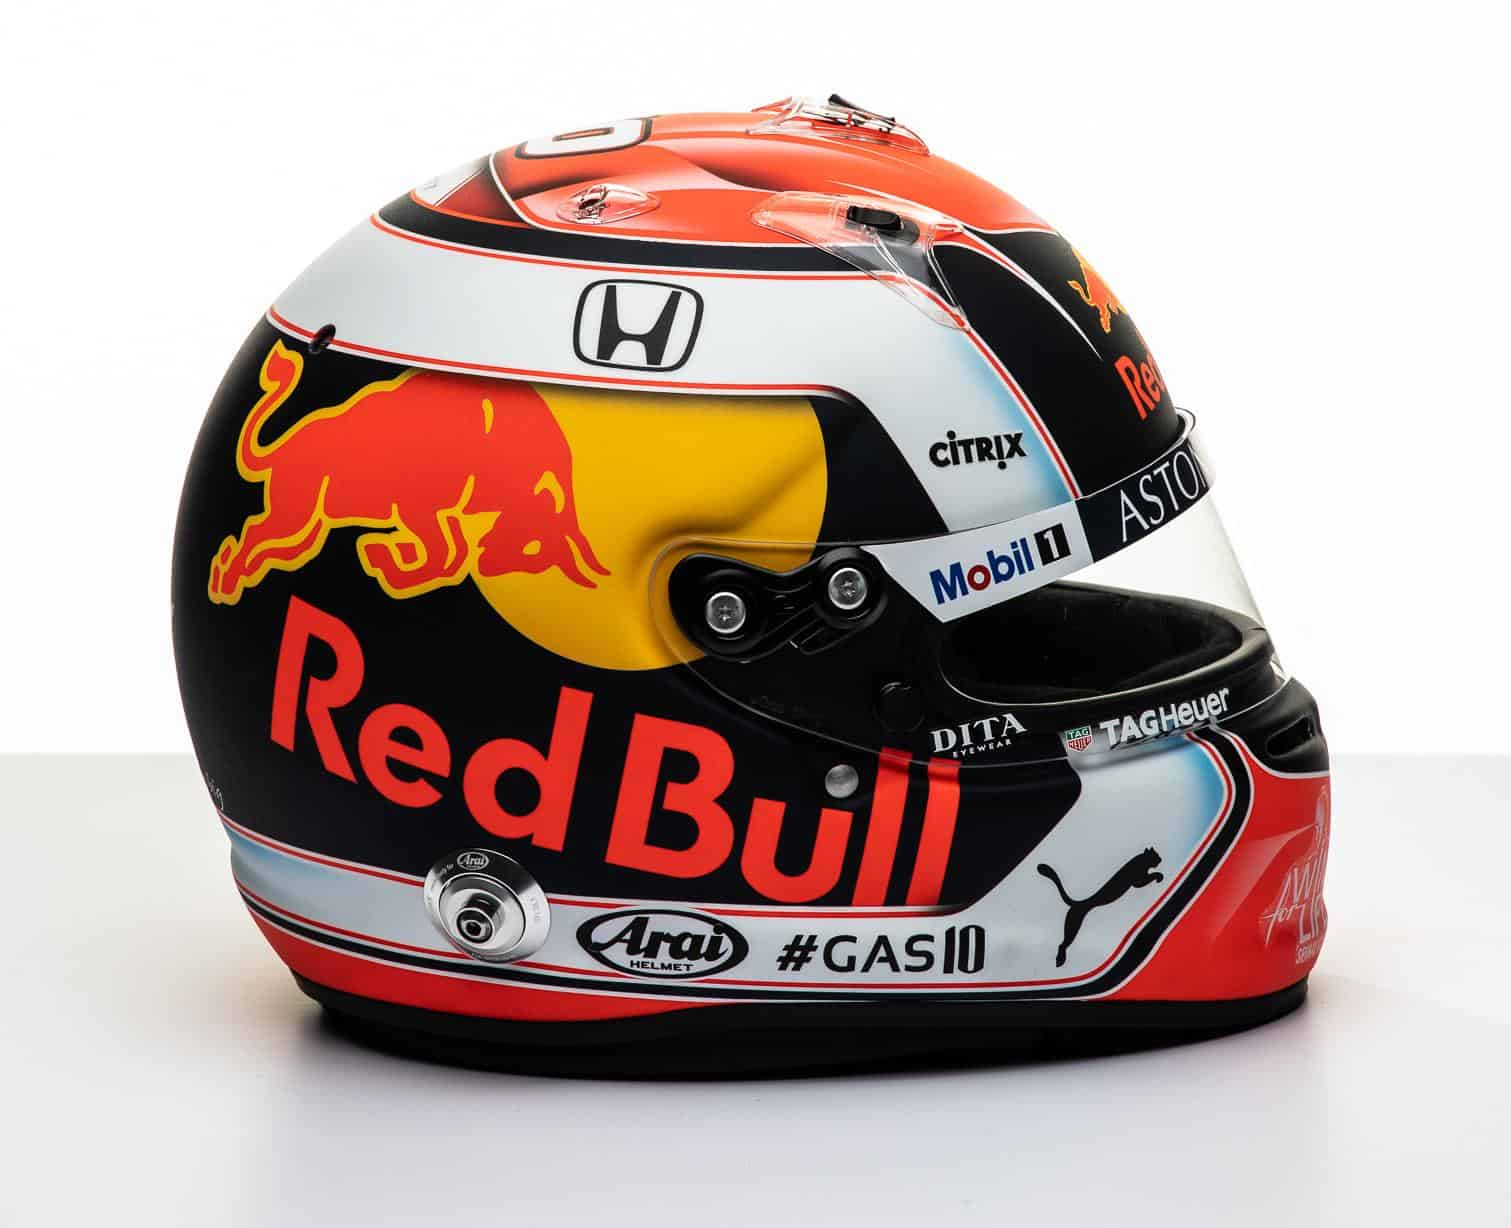 2019 F1 Pierre Gasly Red Bull Honda helmet right side Photo Red Bull Edited by MAXF1net